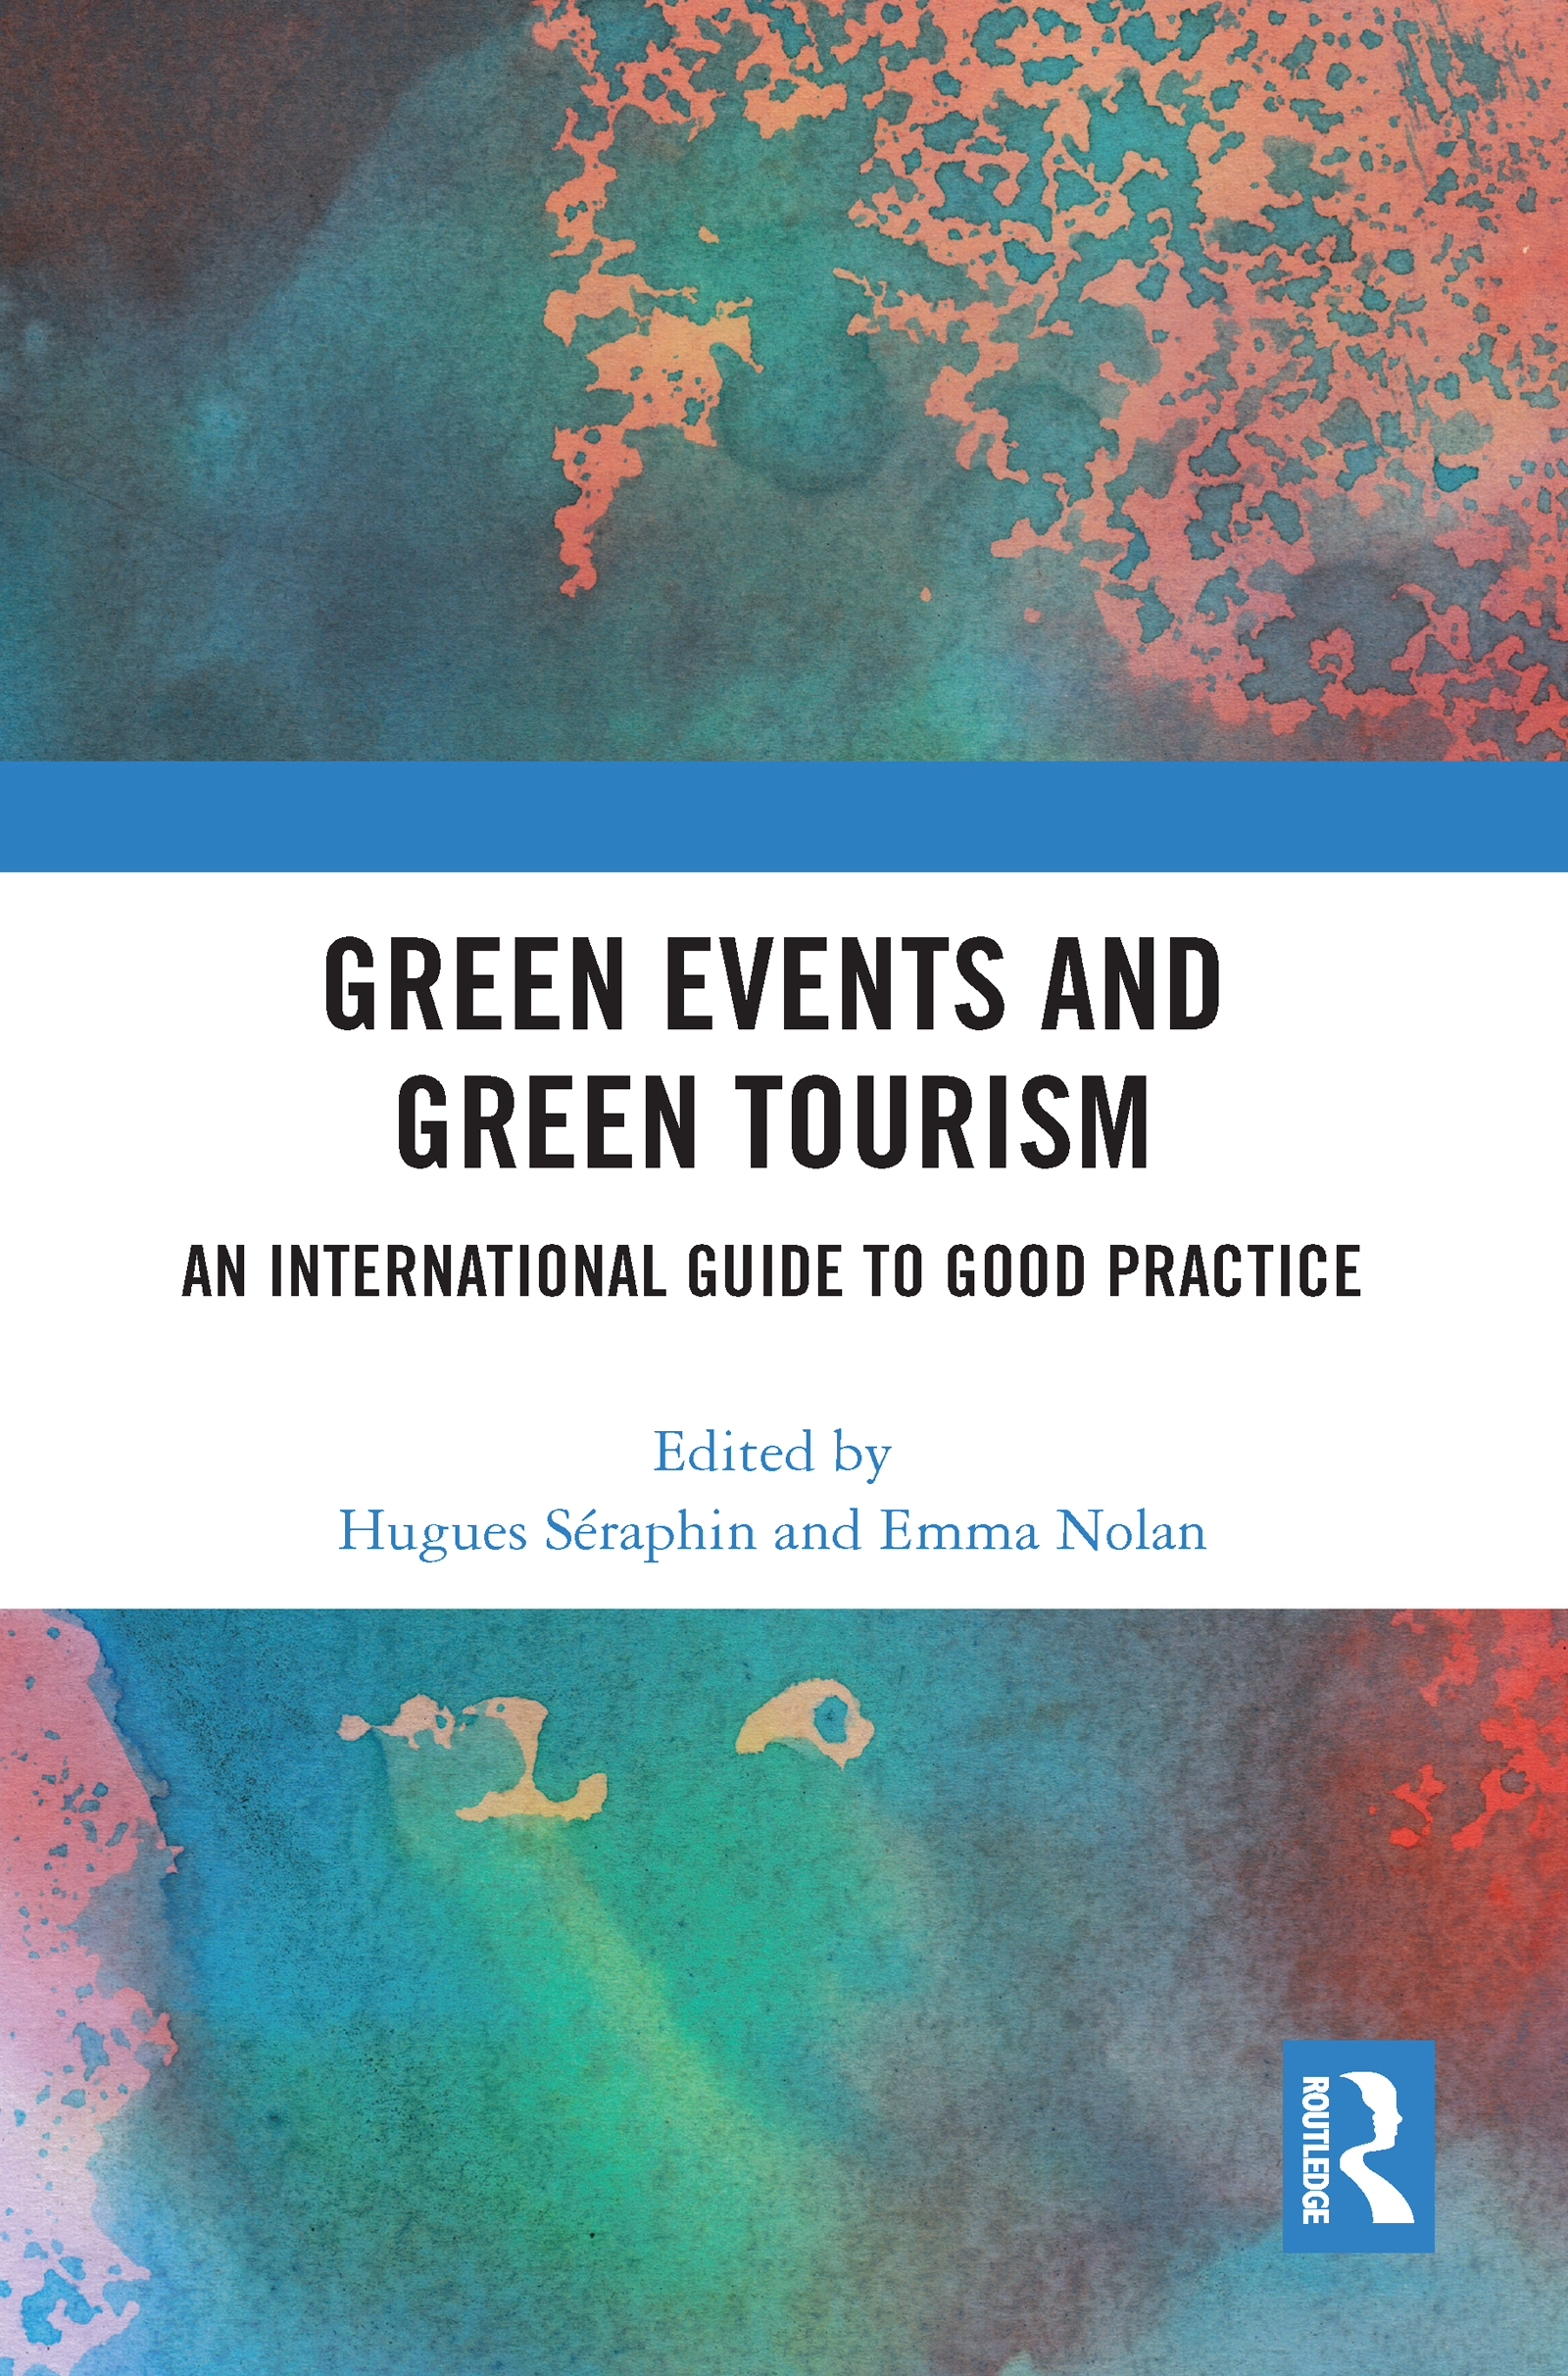 Green Events and Green Tourism